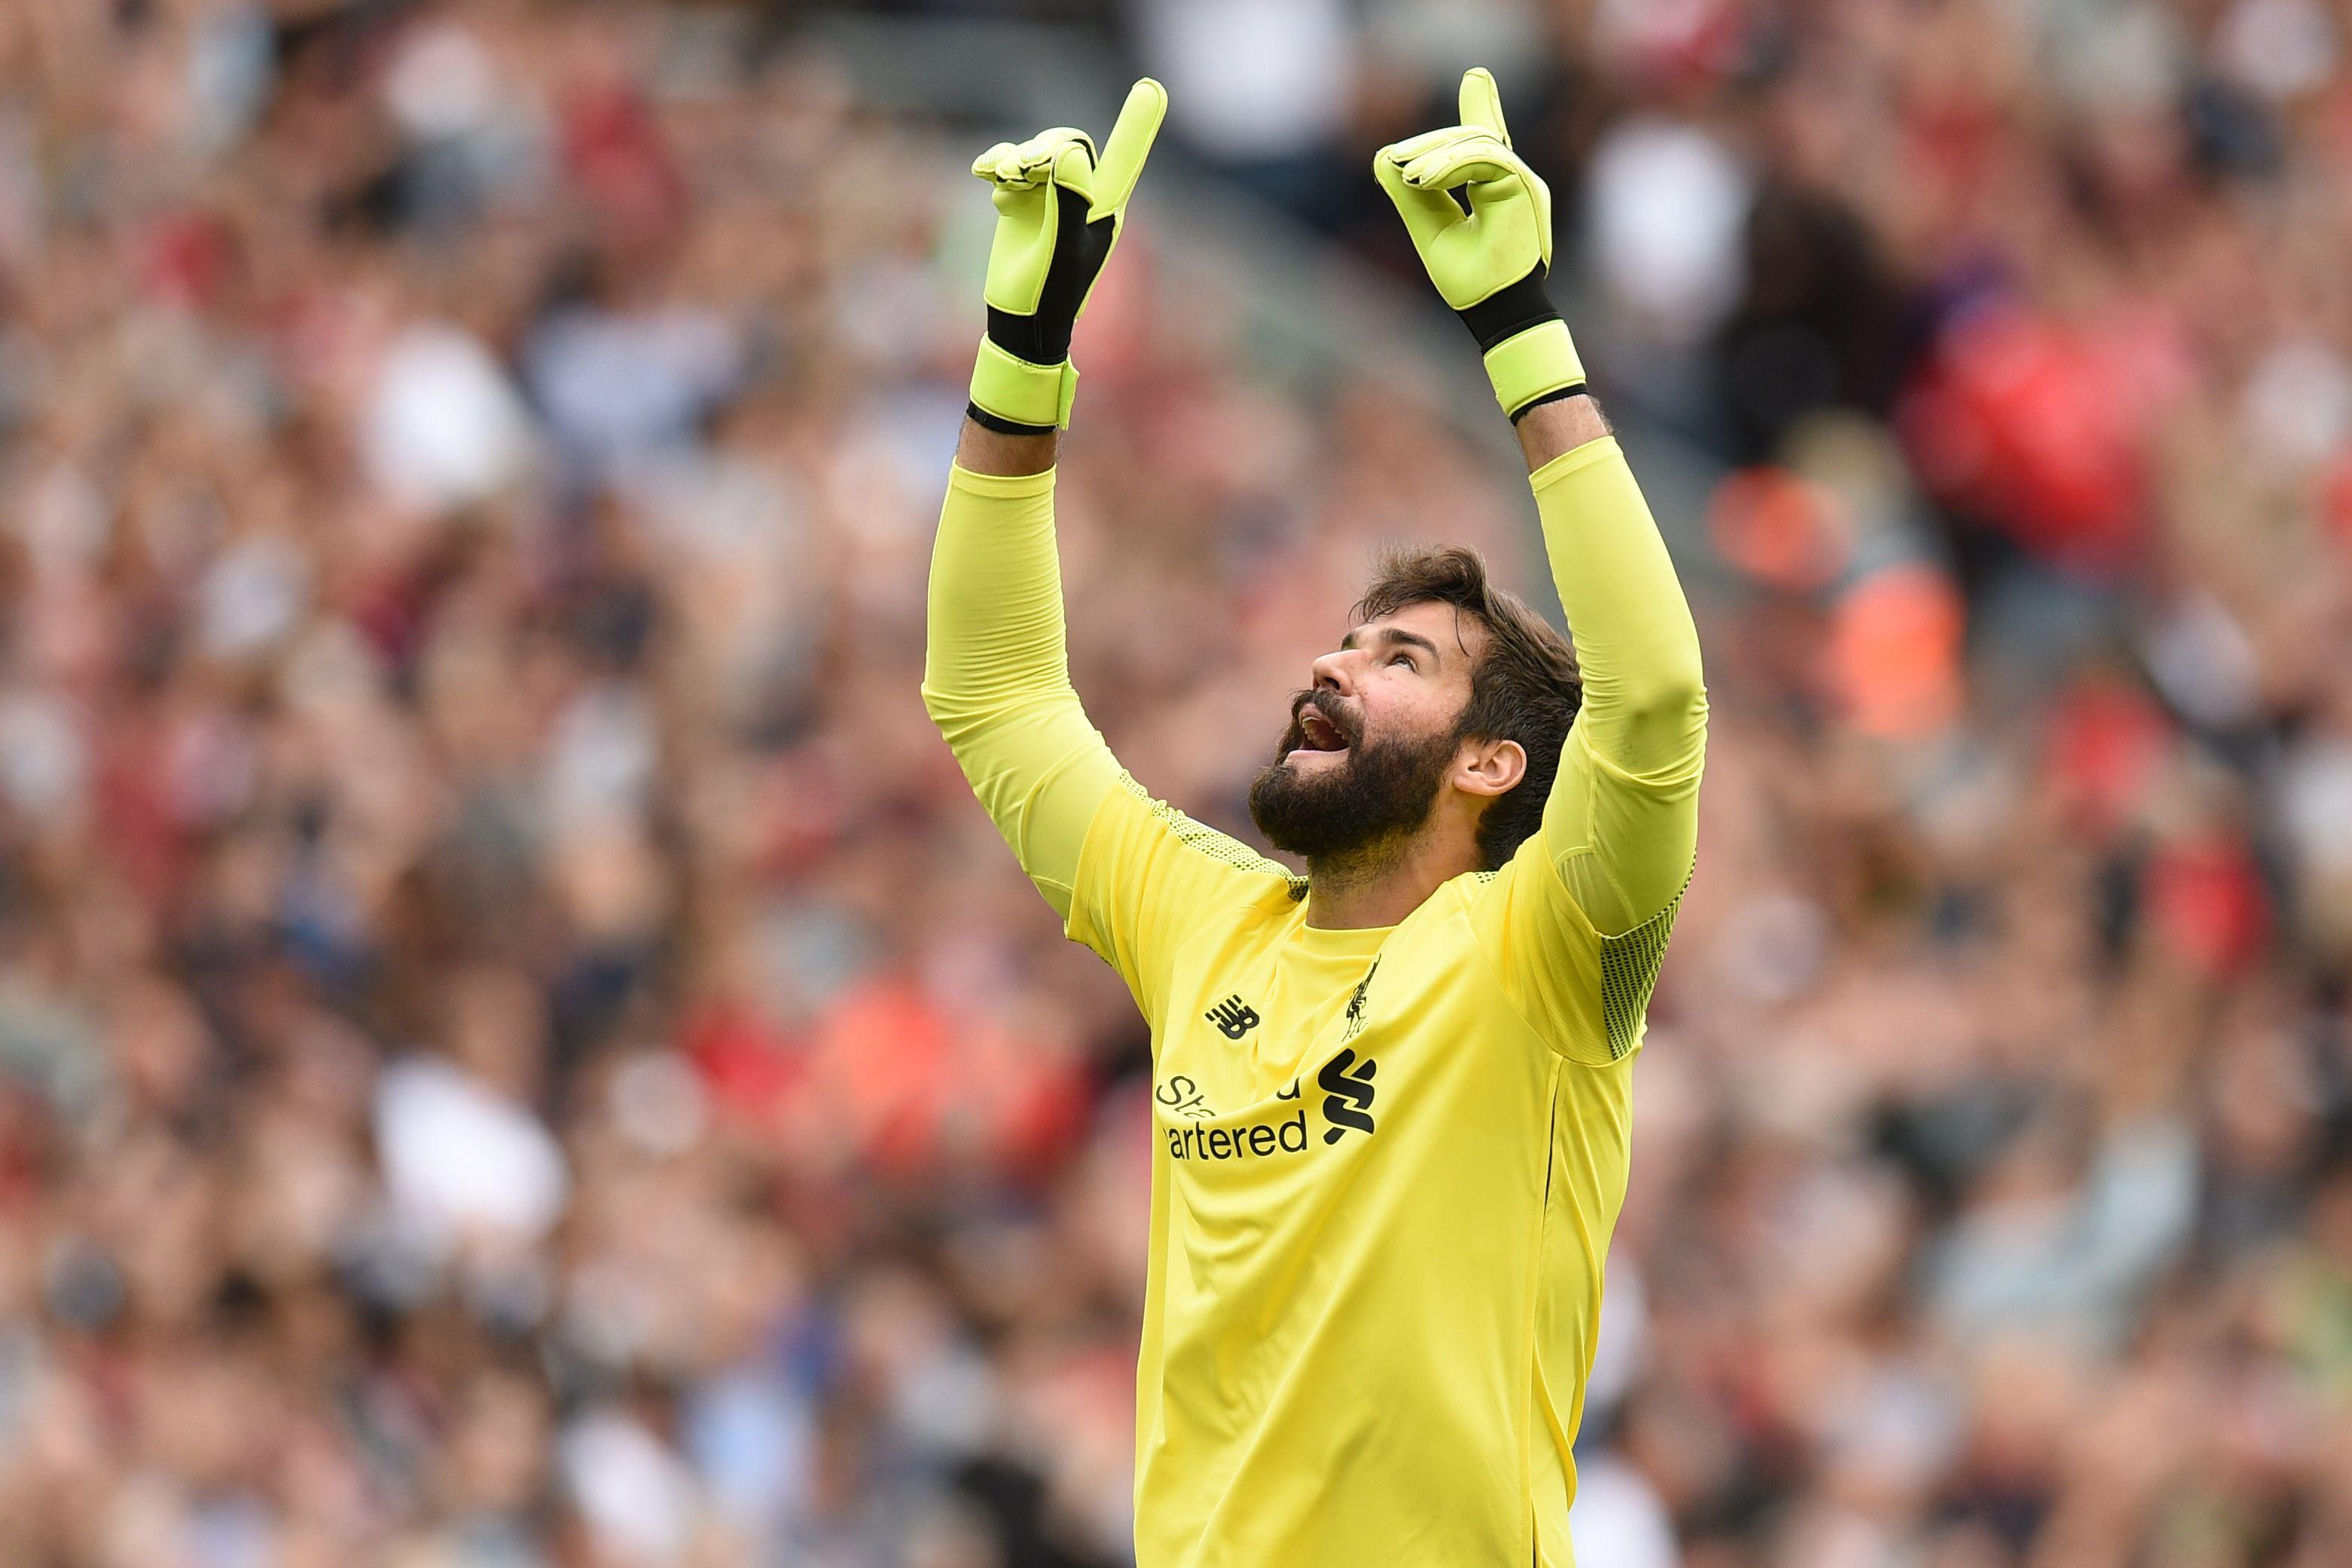 New goalkeeper Alisson had very little to do on his debut